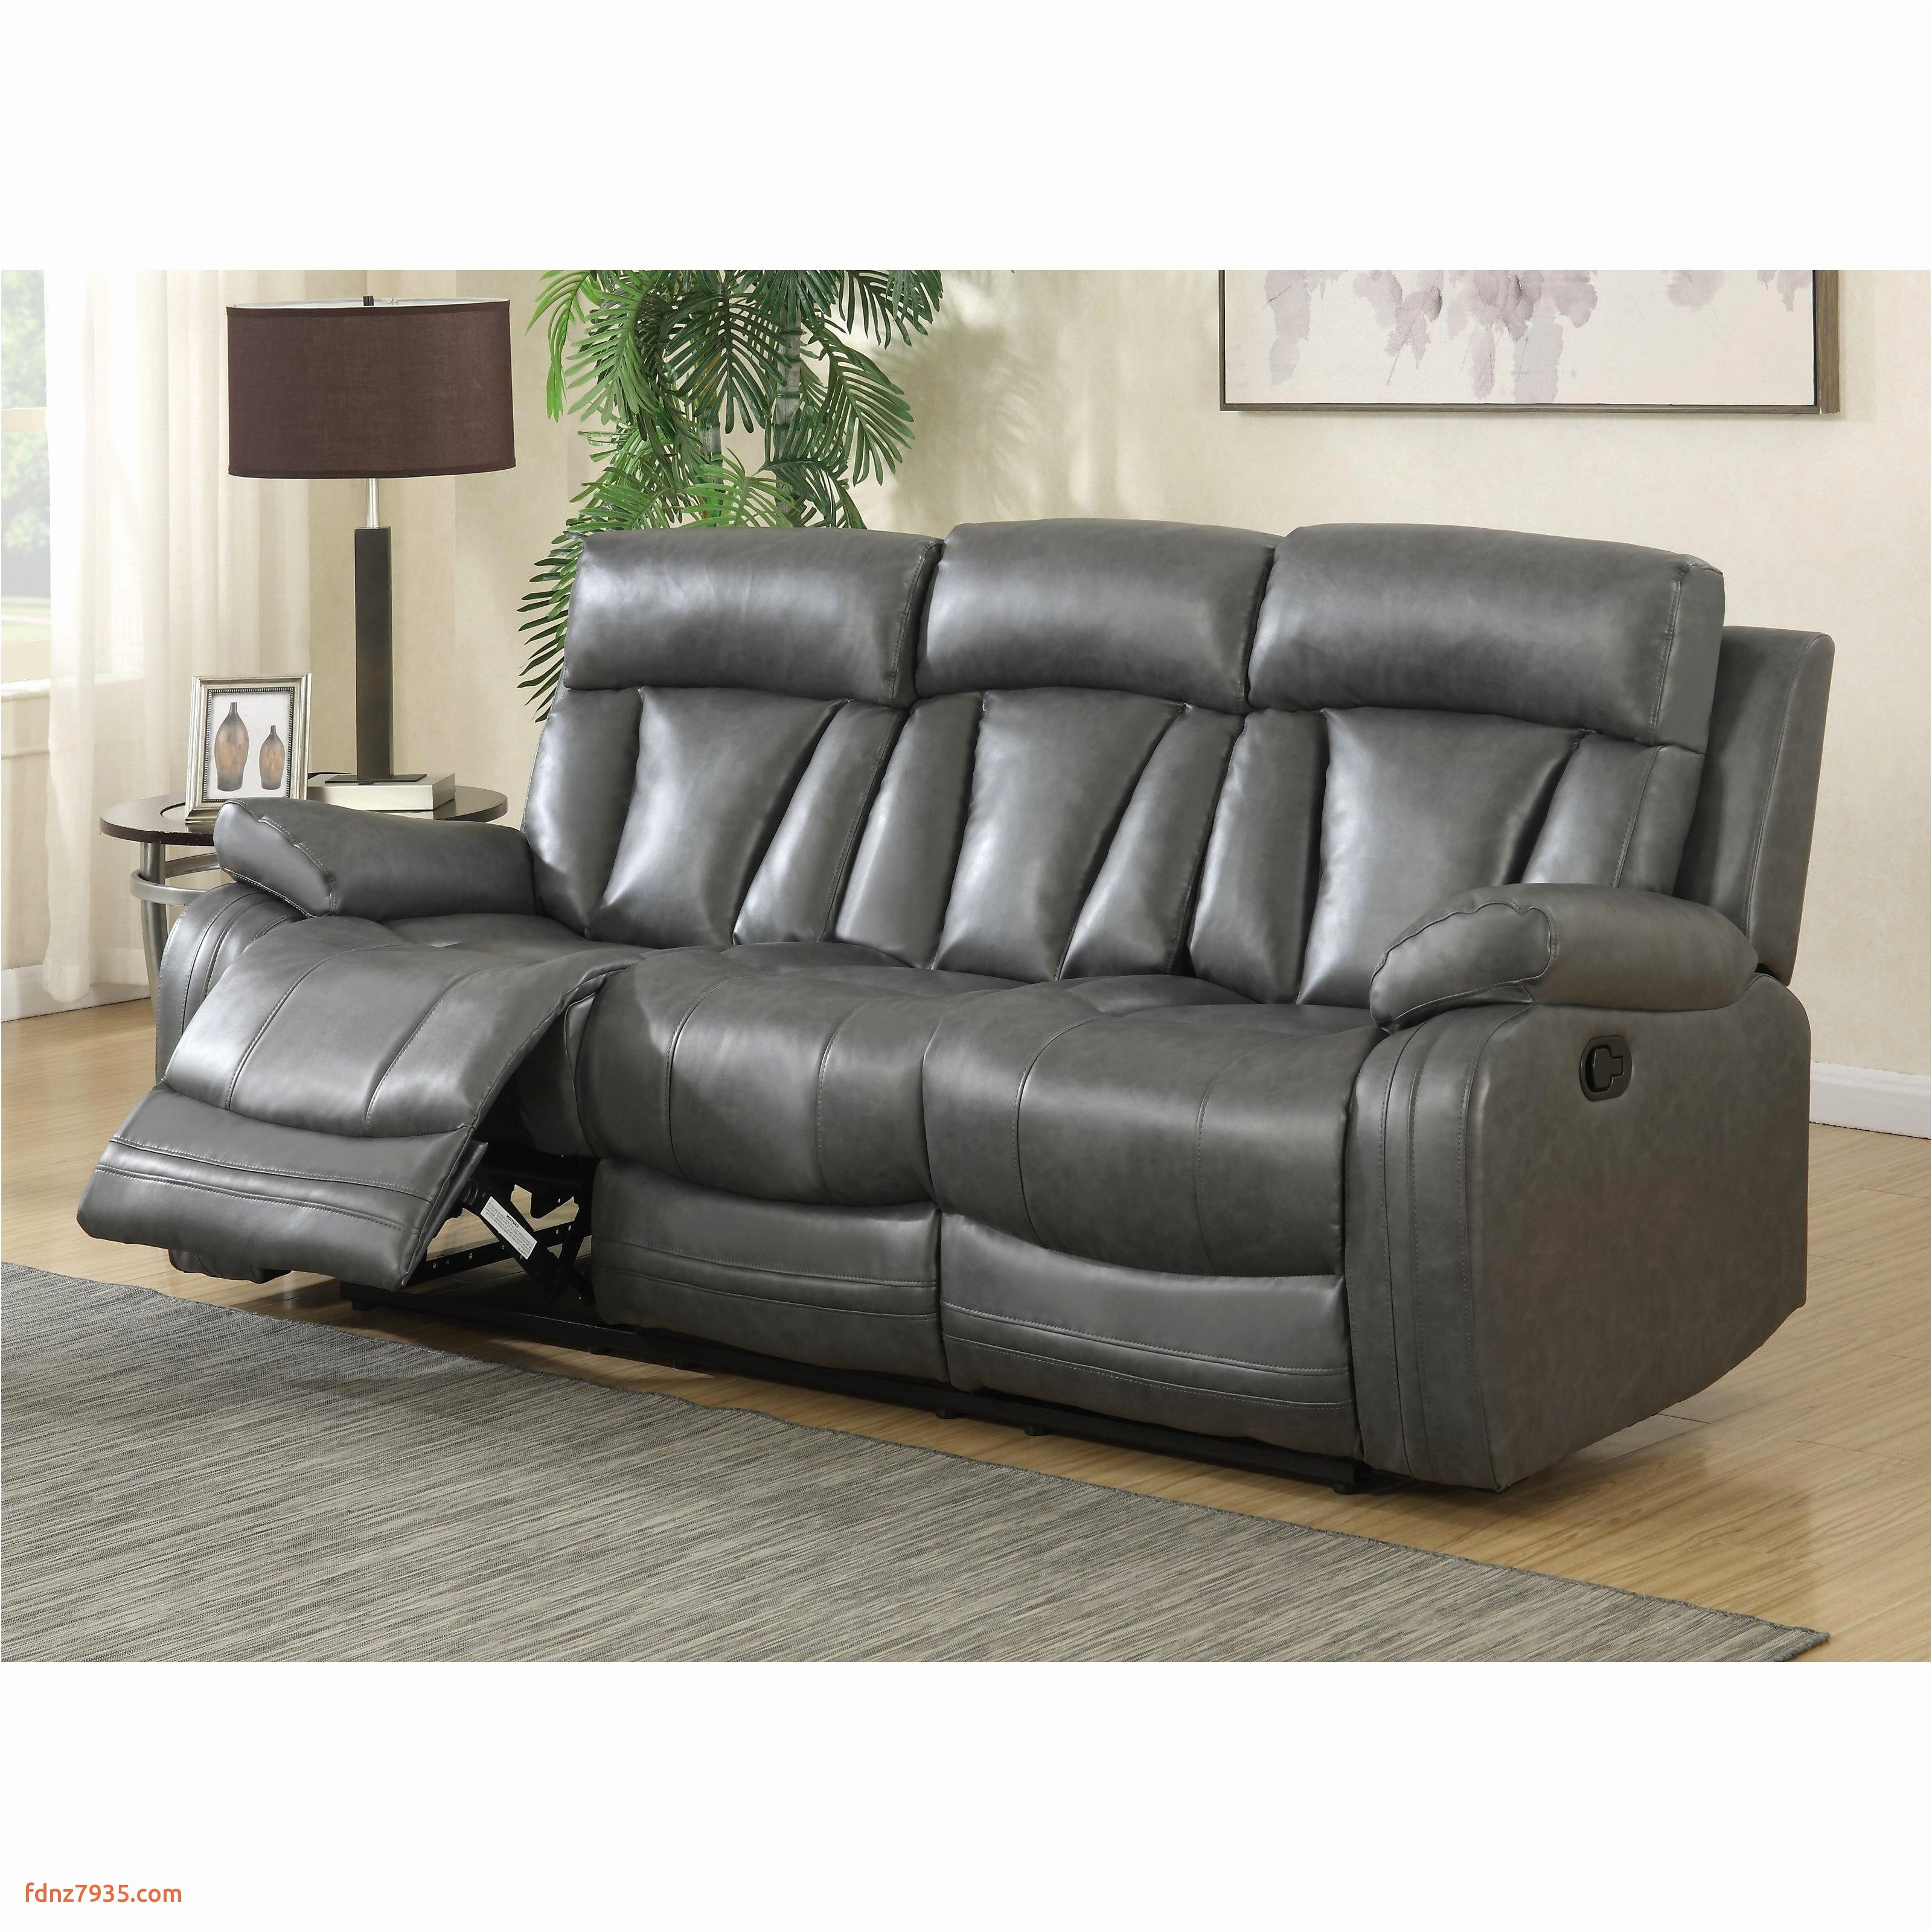 Couch Gross Minimalist Sofa Gross Couch Möbel Sofa Sofa Home Grey